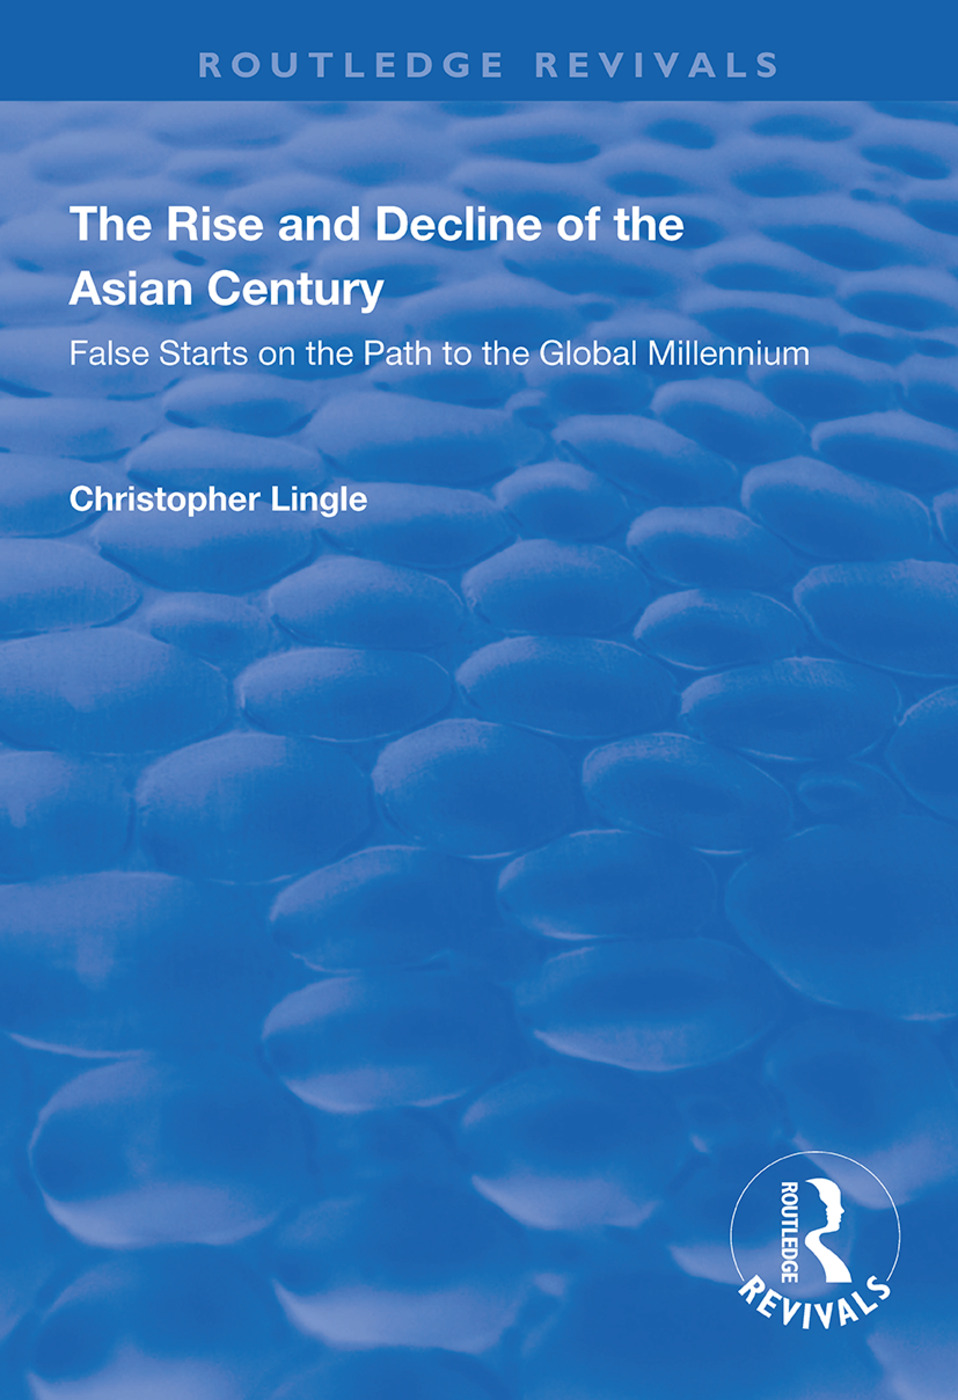 The Rise and Decline of the Asian Century: False Starts on the Path to the Global Millennium book cover